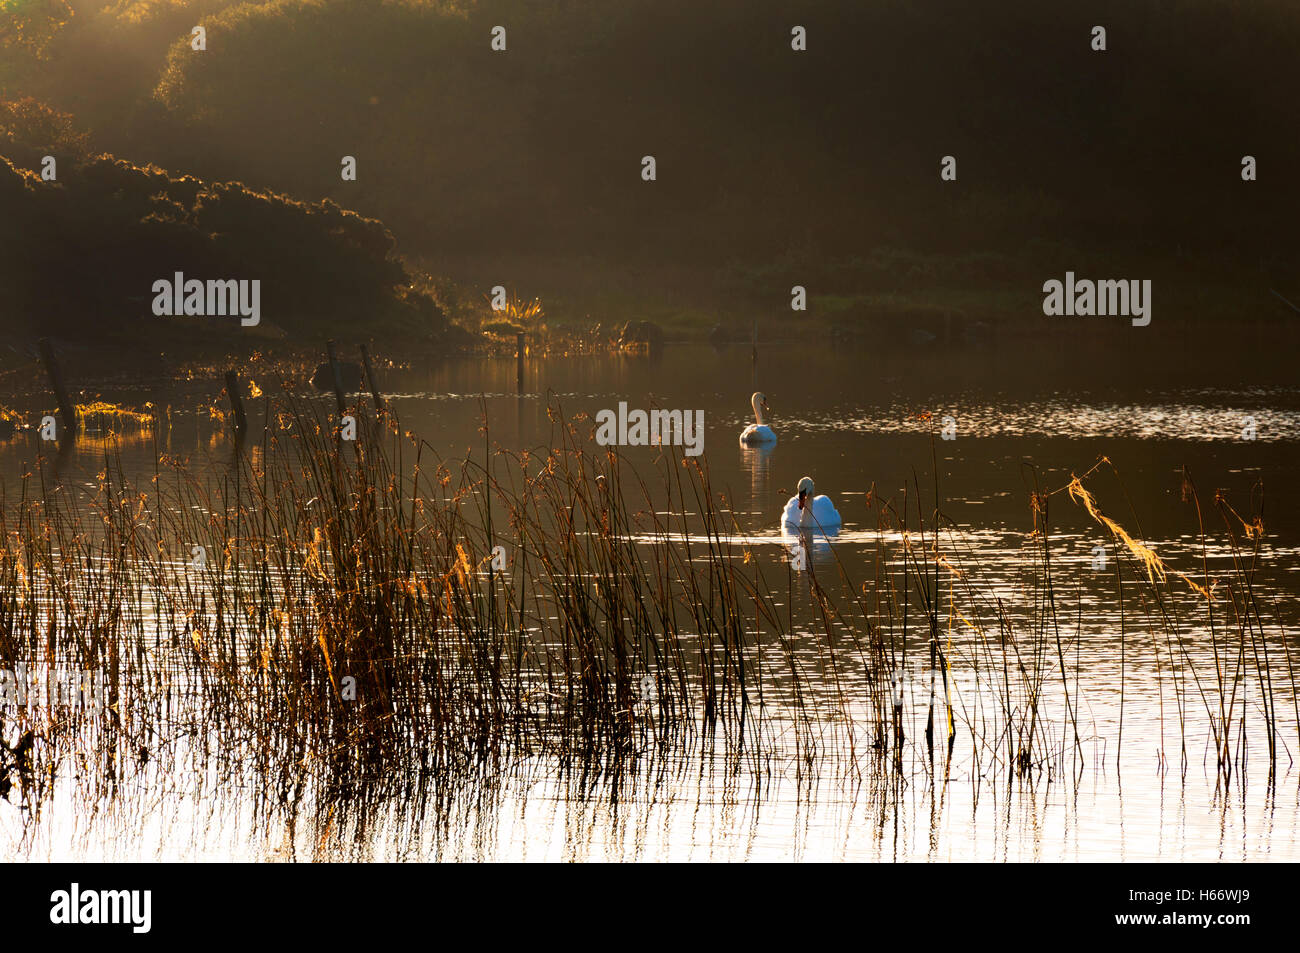 Autumn morning light on Lake Shanaghan, Ardara, County Donegal, Ireland - Stock Image